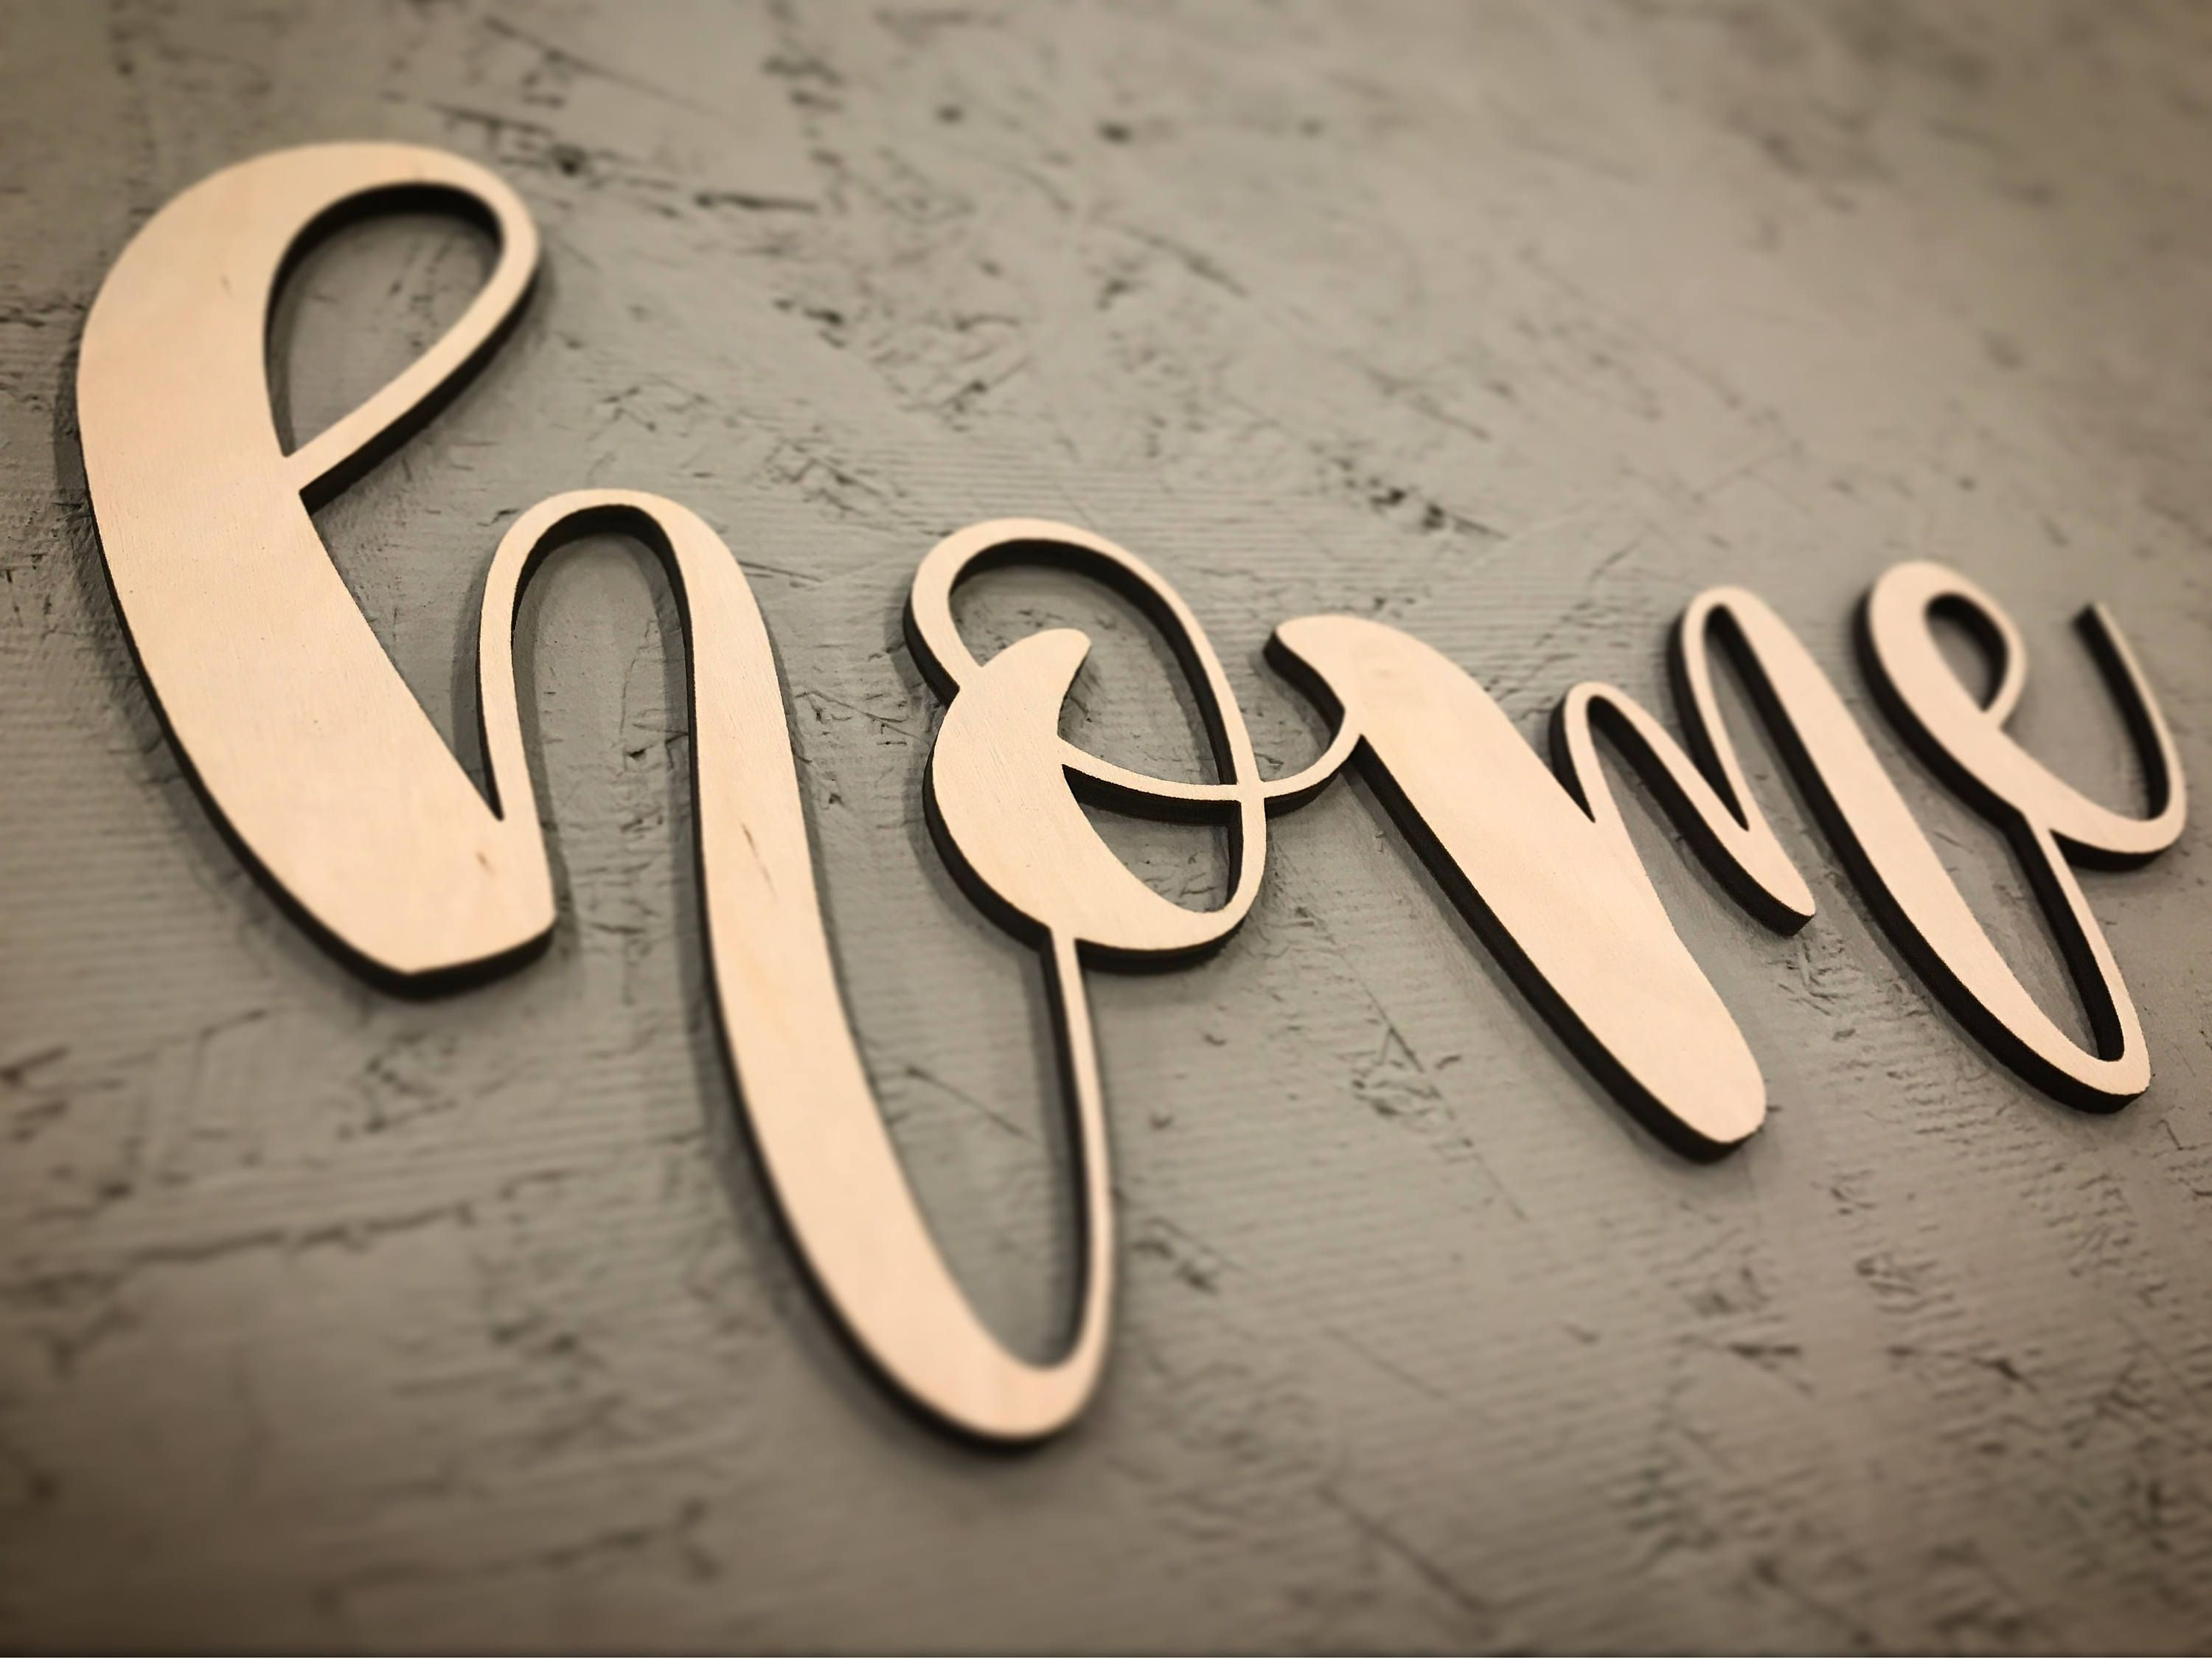 Home Laser Cut Wood Sign Letters Made In Canada Custom Orders Welcome By Majopagecreative On Etsy